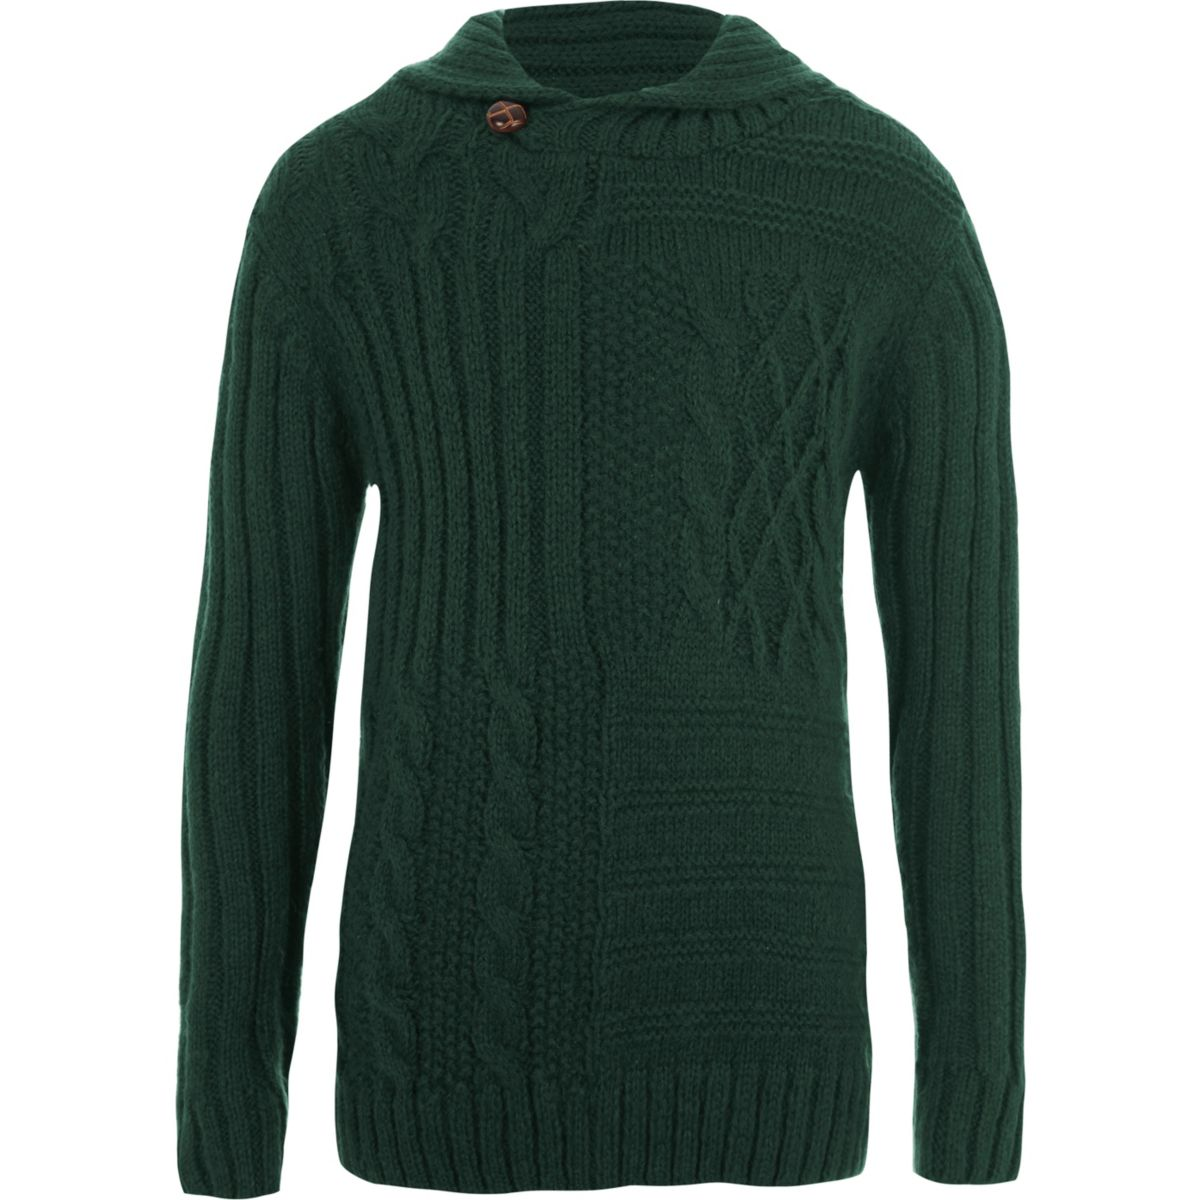 Boys Green Jumper